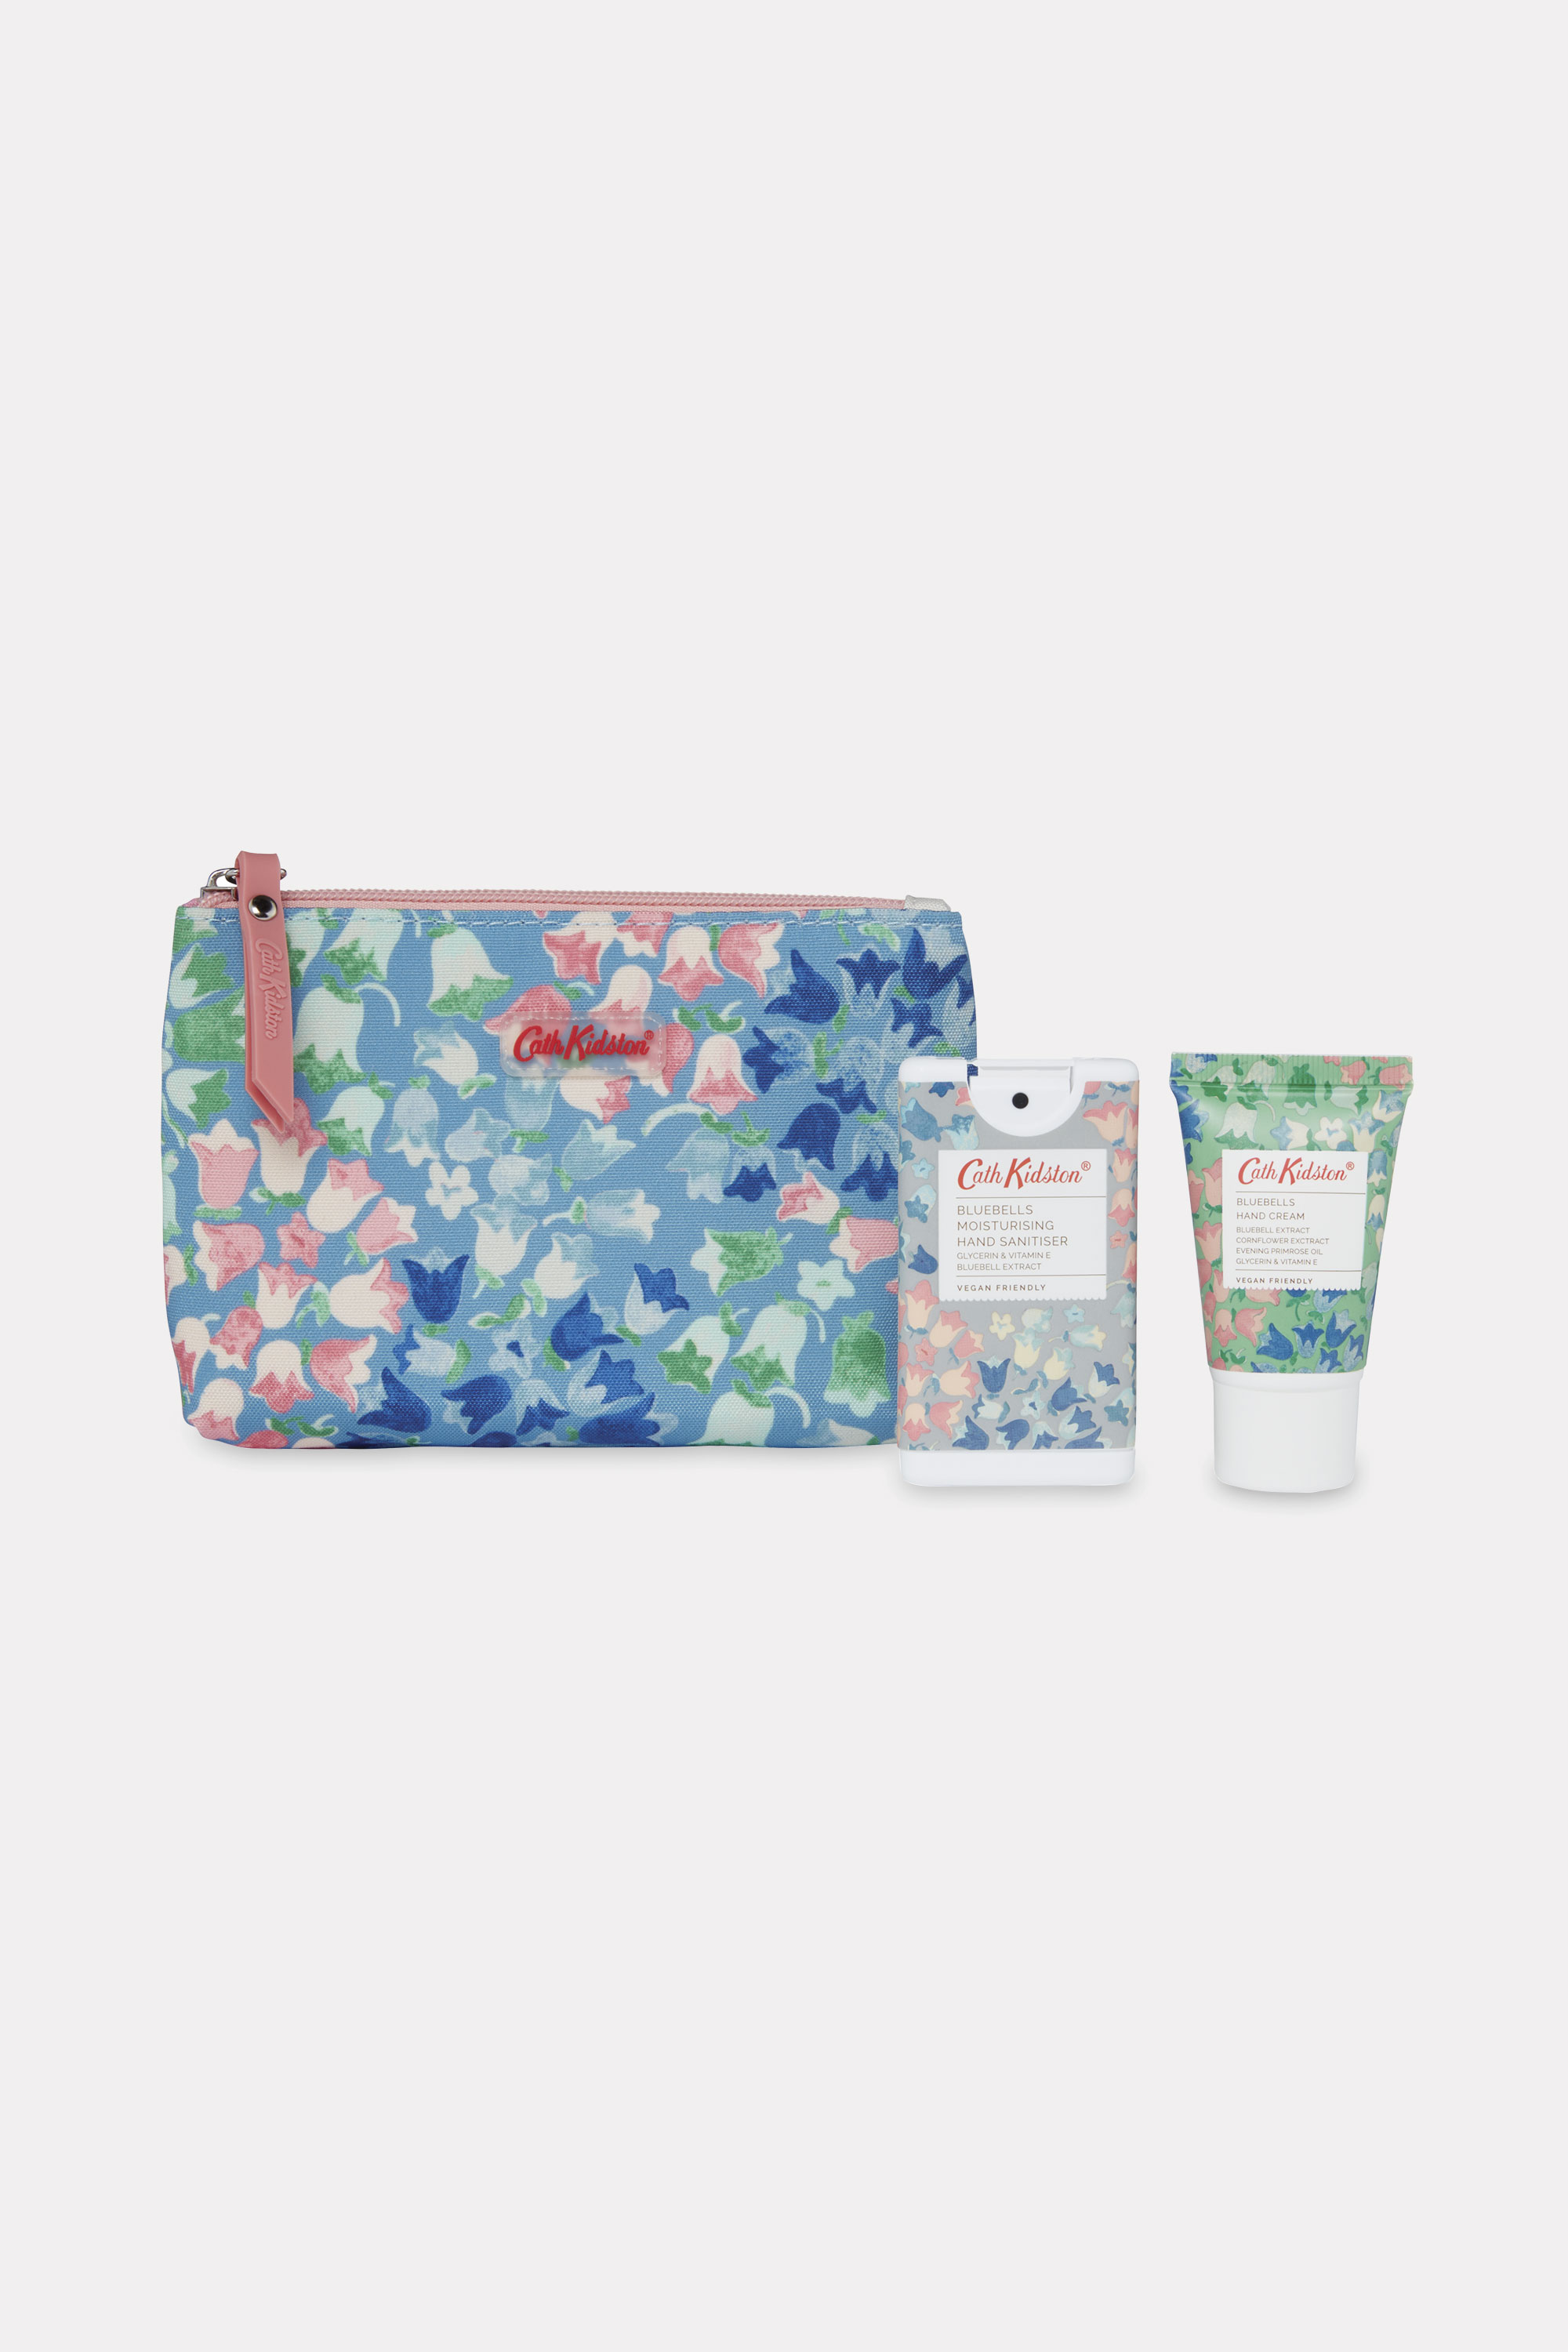 Cath Kidston Wild Barley and Meadow Scented Hand Sanitiser and Cream Gift Set in Warm Cream